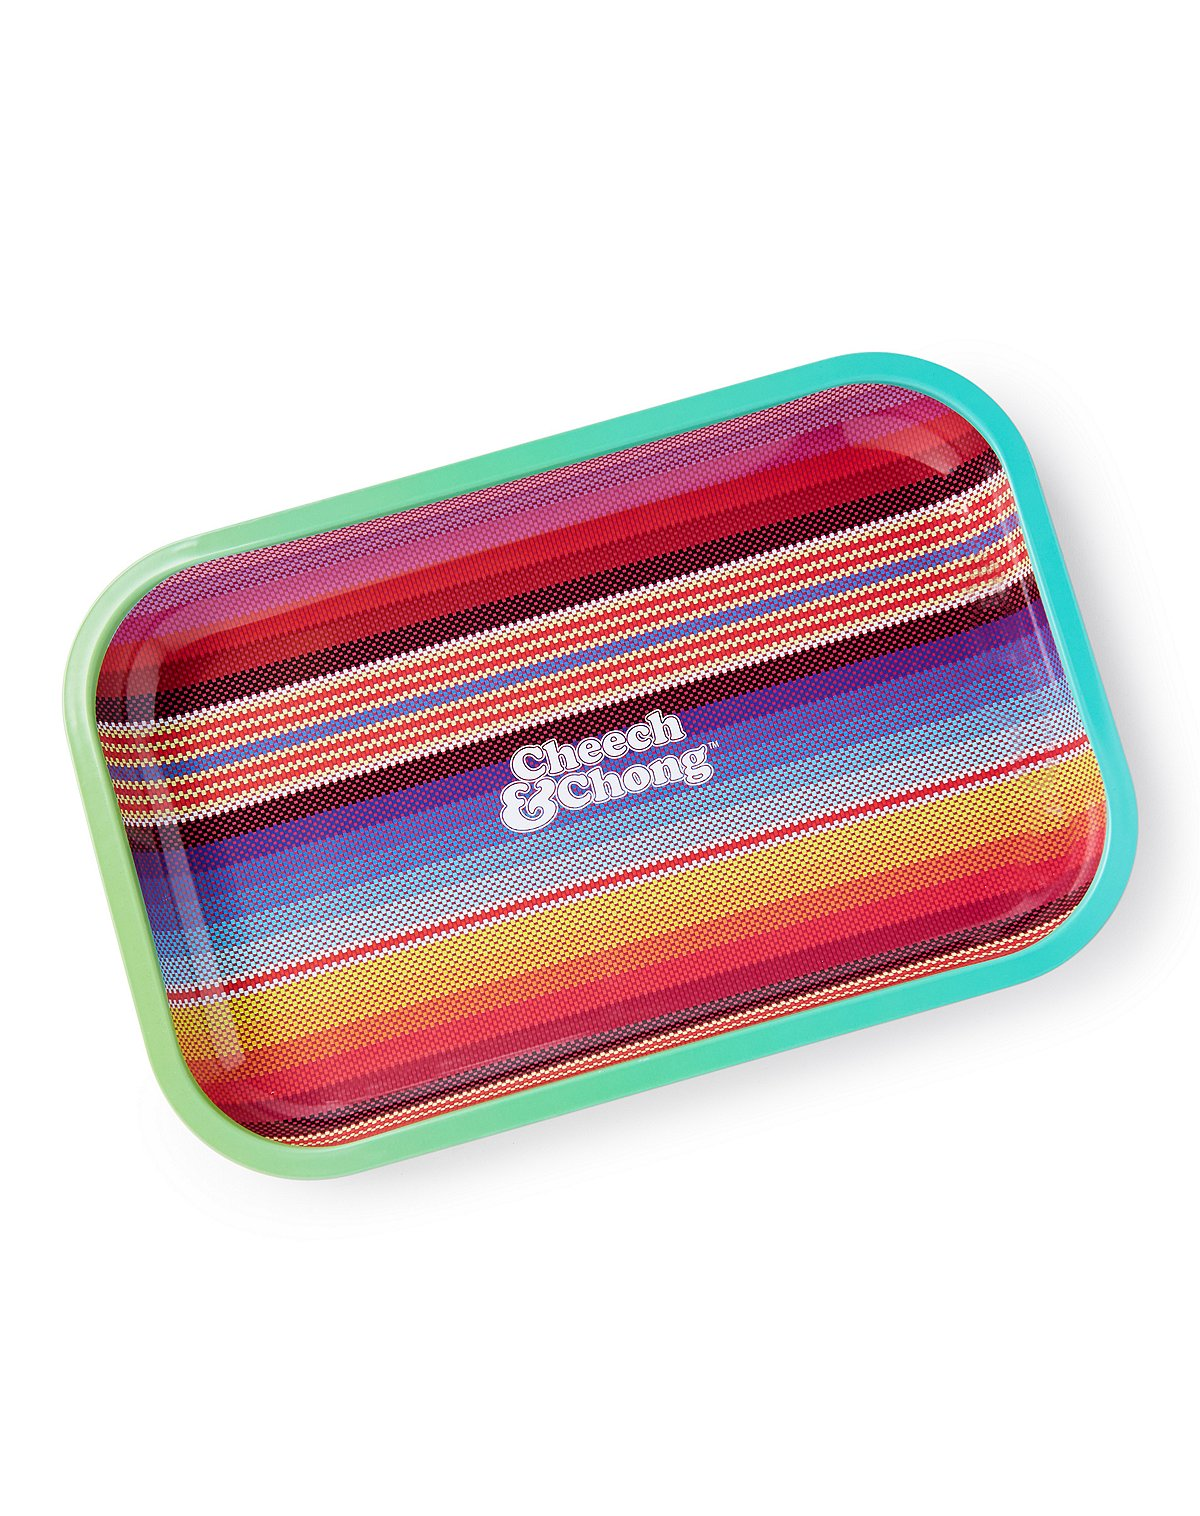 Striped Cheech and Chong Rolling Tray